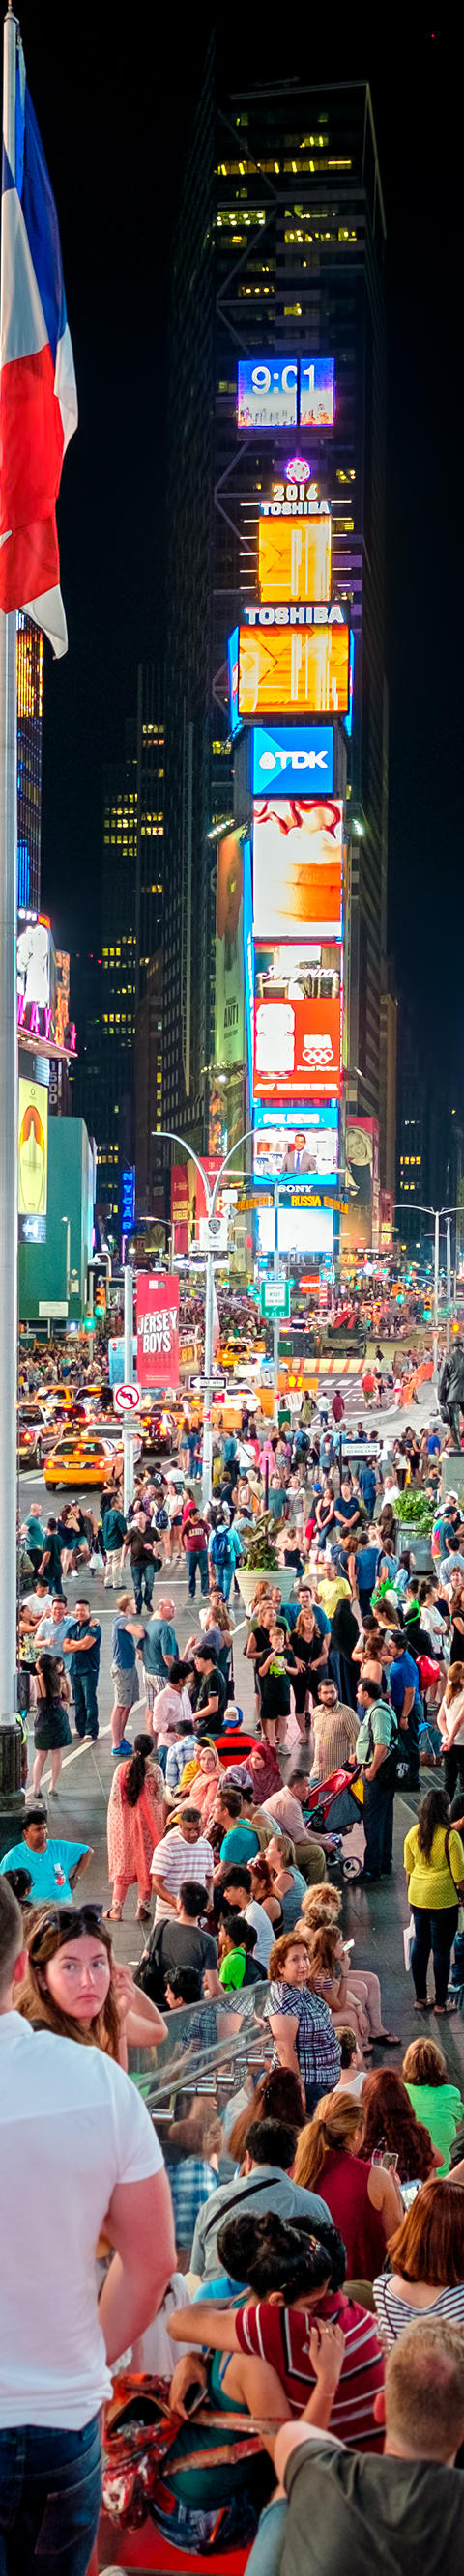 Visit NYC: A Travel Guide for Planning a Trip to New York